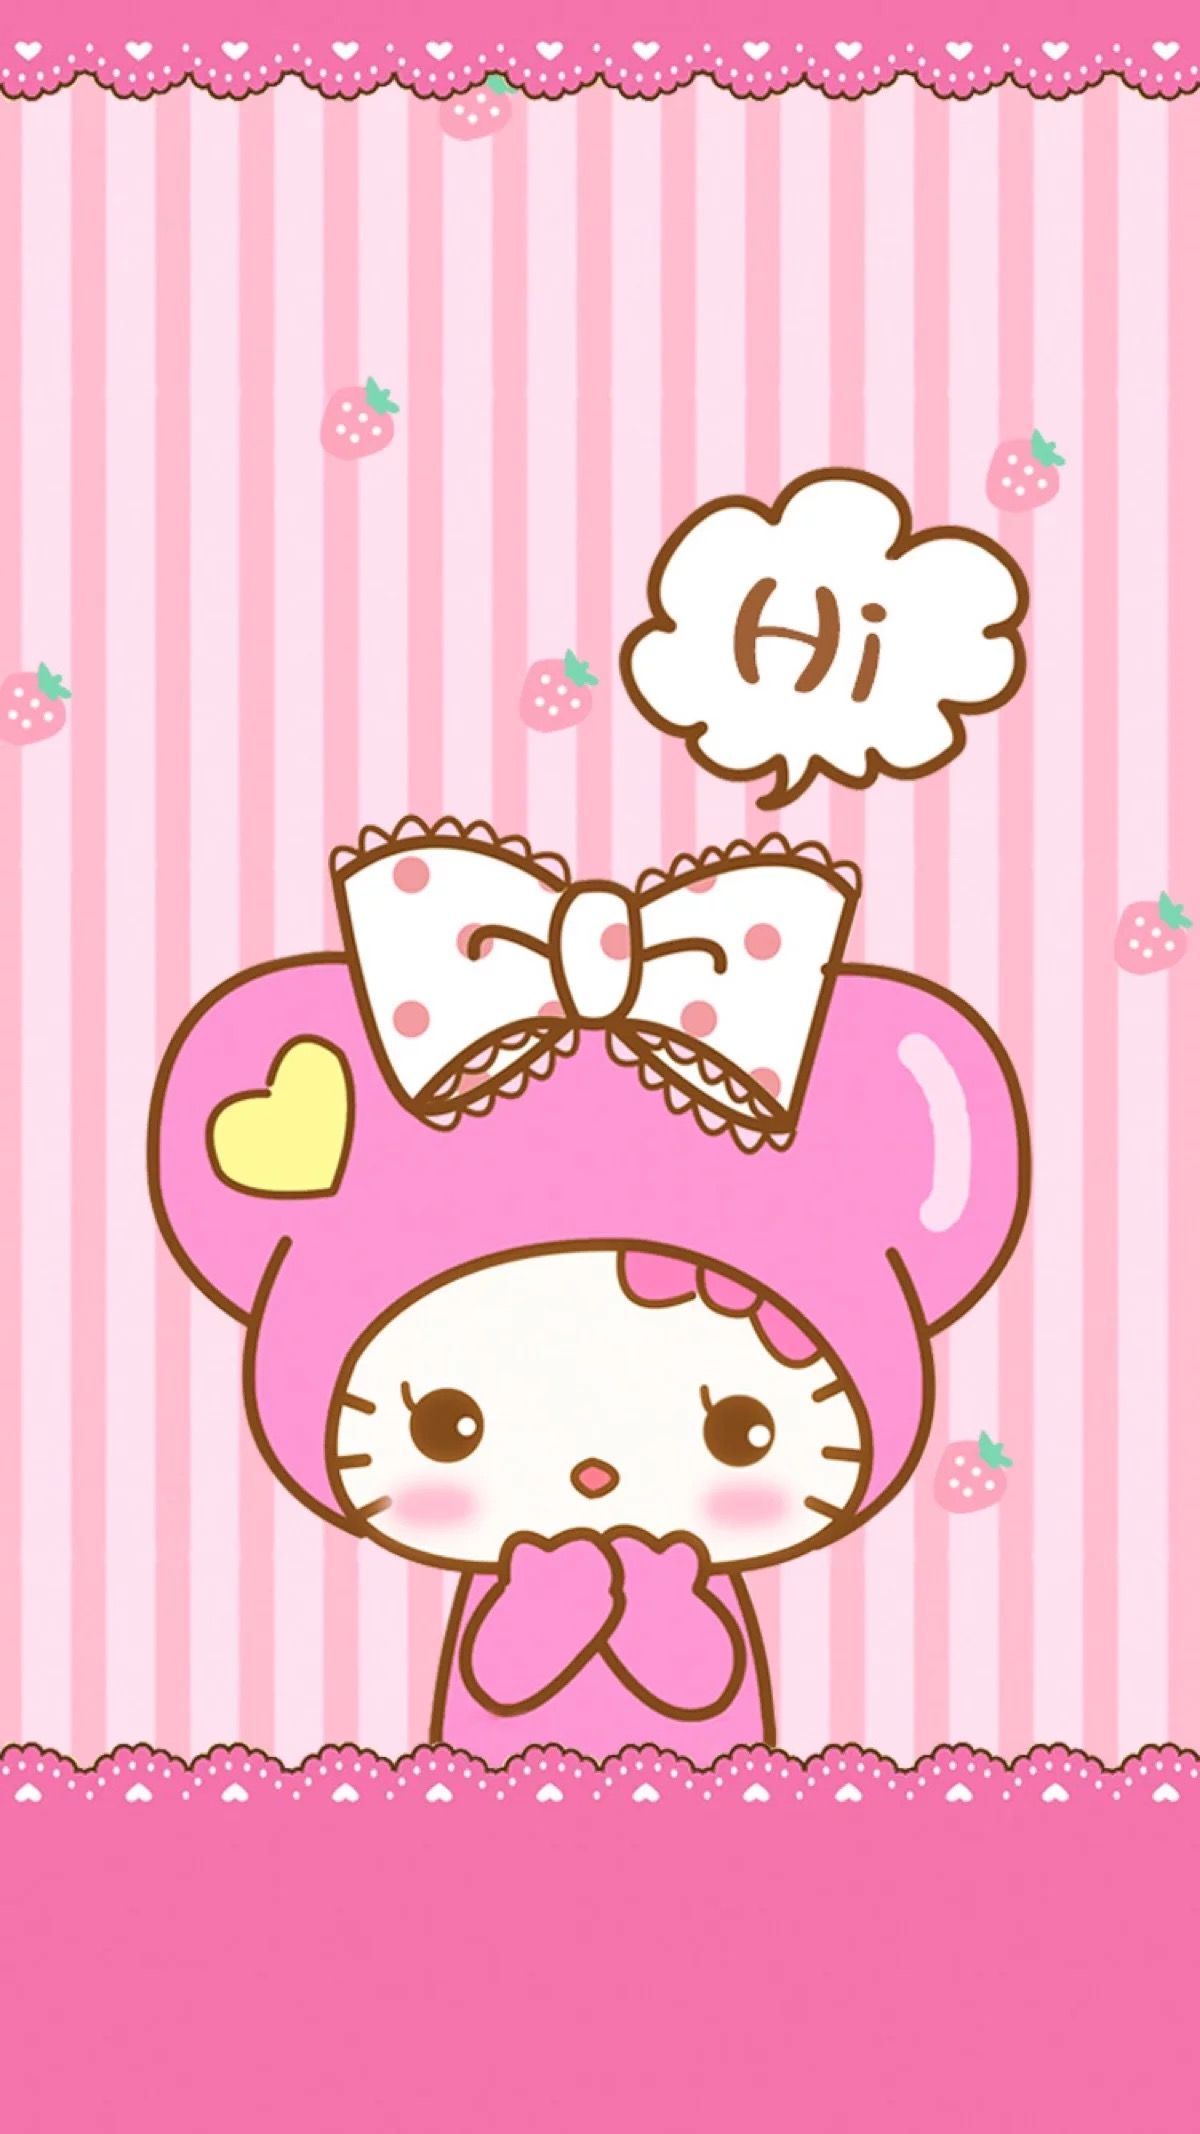 Wonderful Wallpaper Hello Kitty Pastel - 15095881669a7d6c14a8d888f3125ba4  Graphic_1007024.jpg